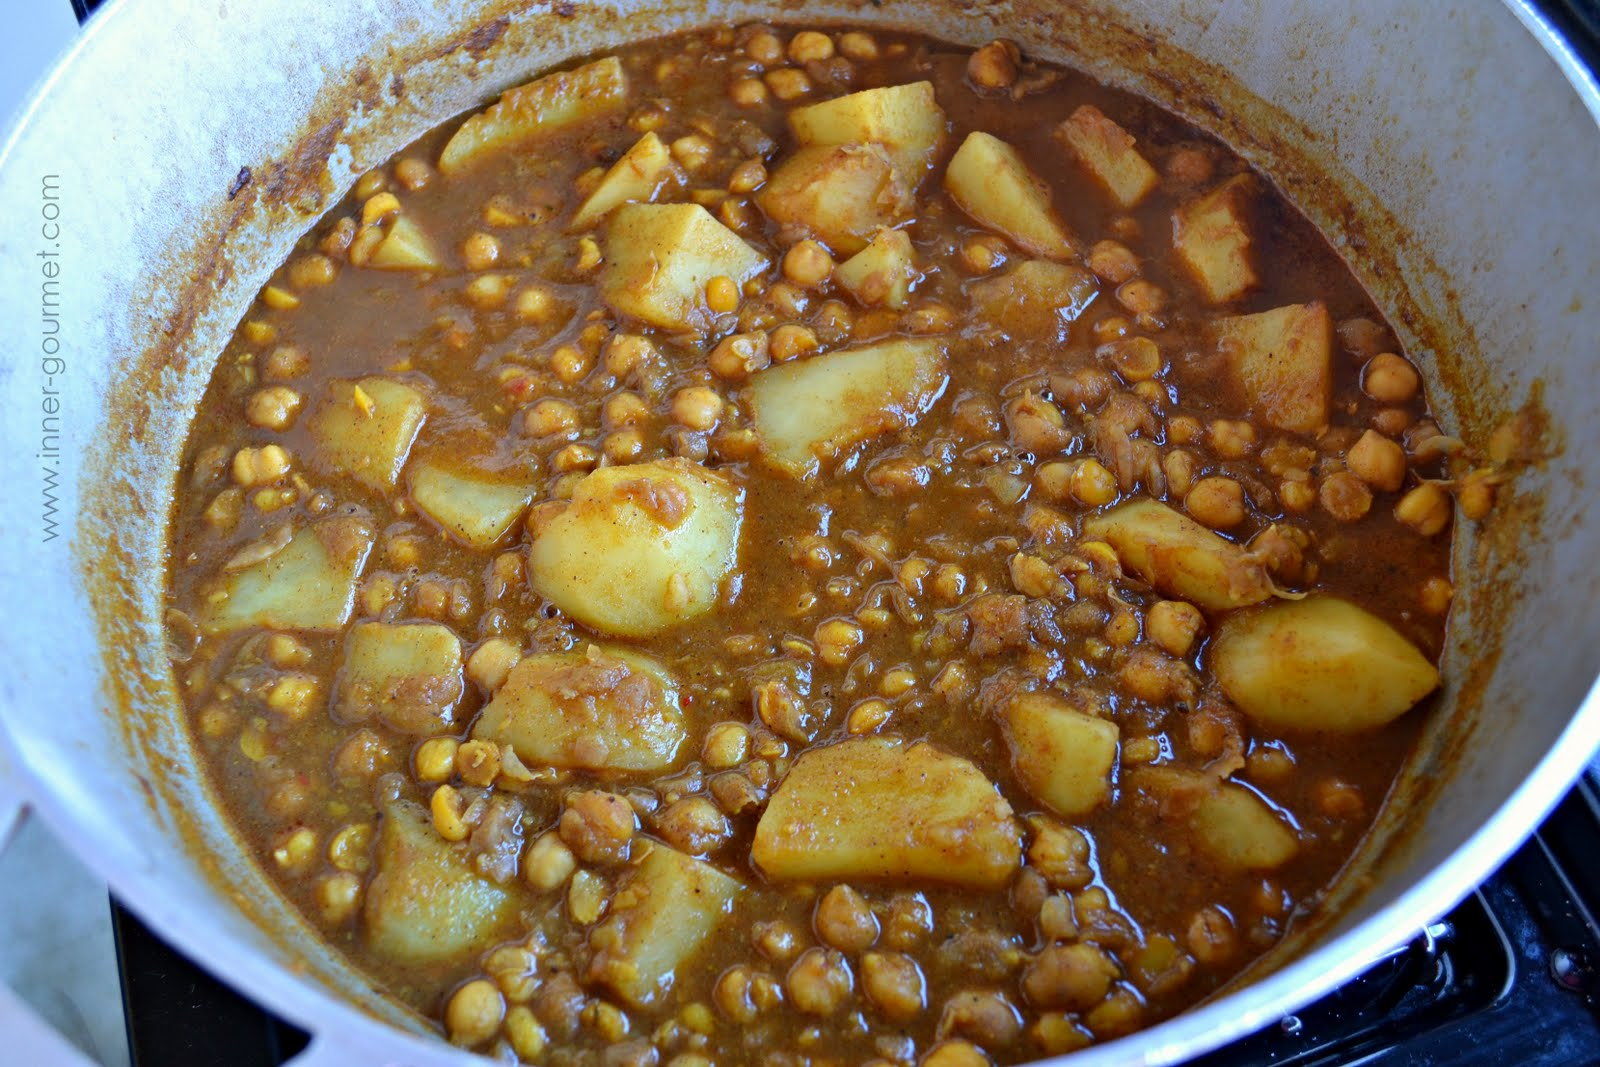 Curry is done when potatoes are completely cooked through and curry ...